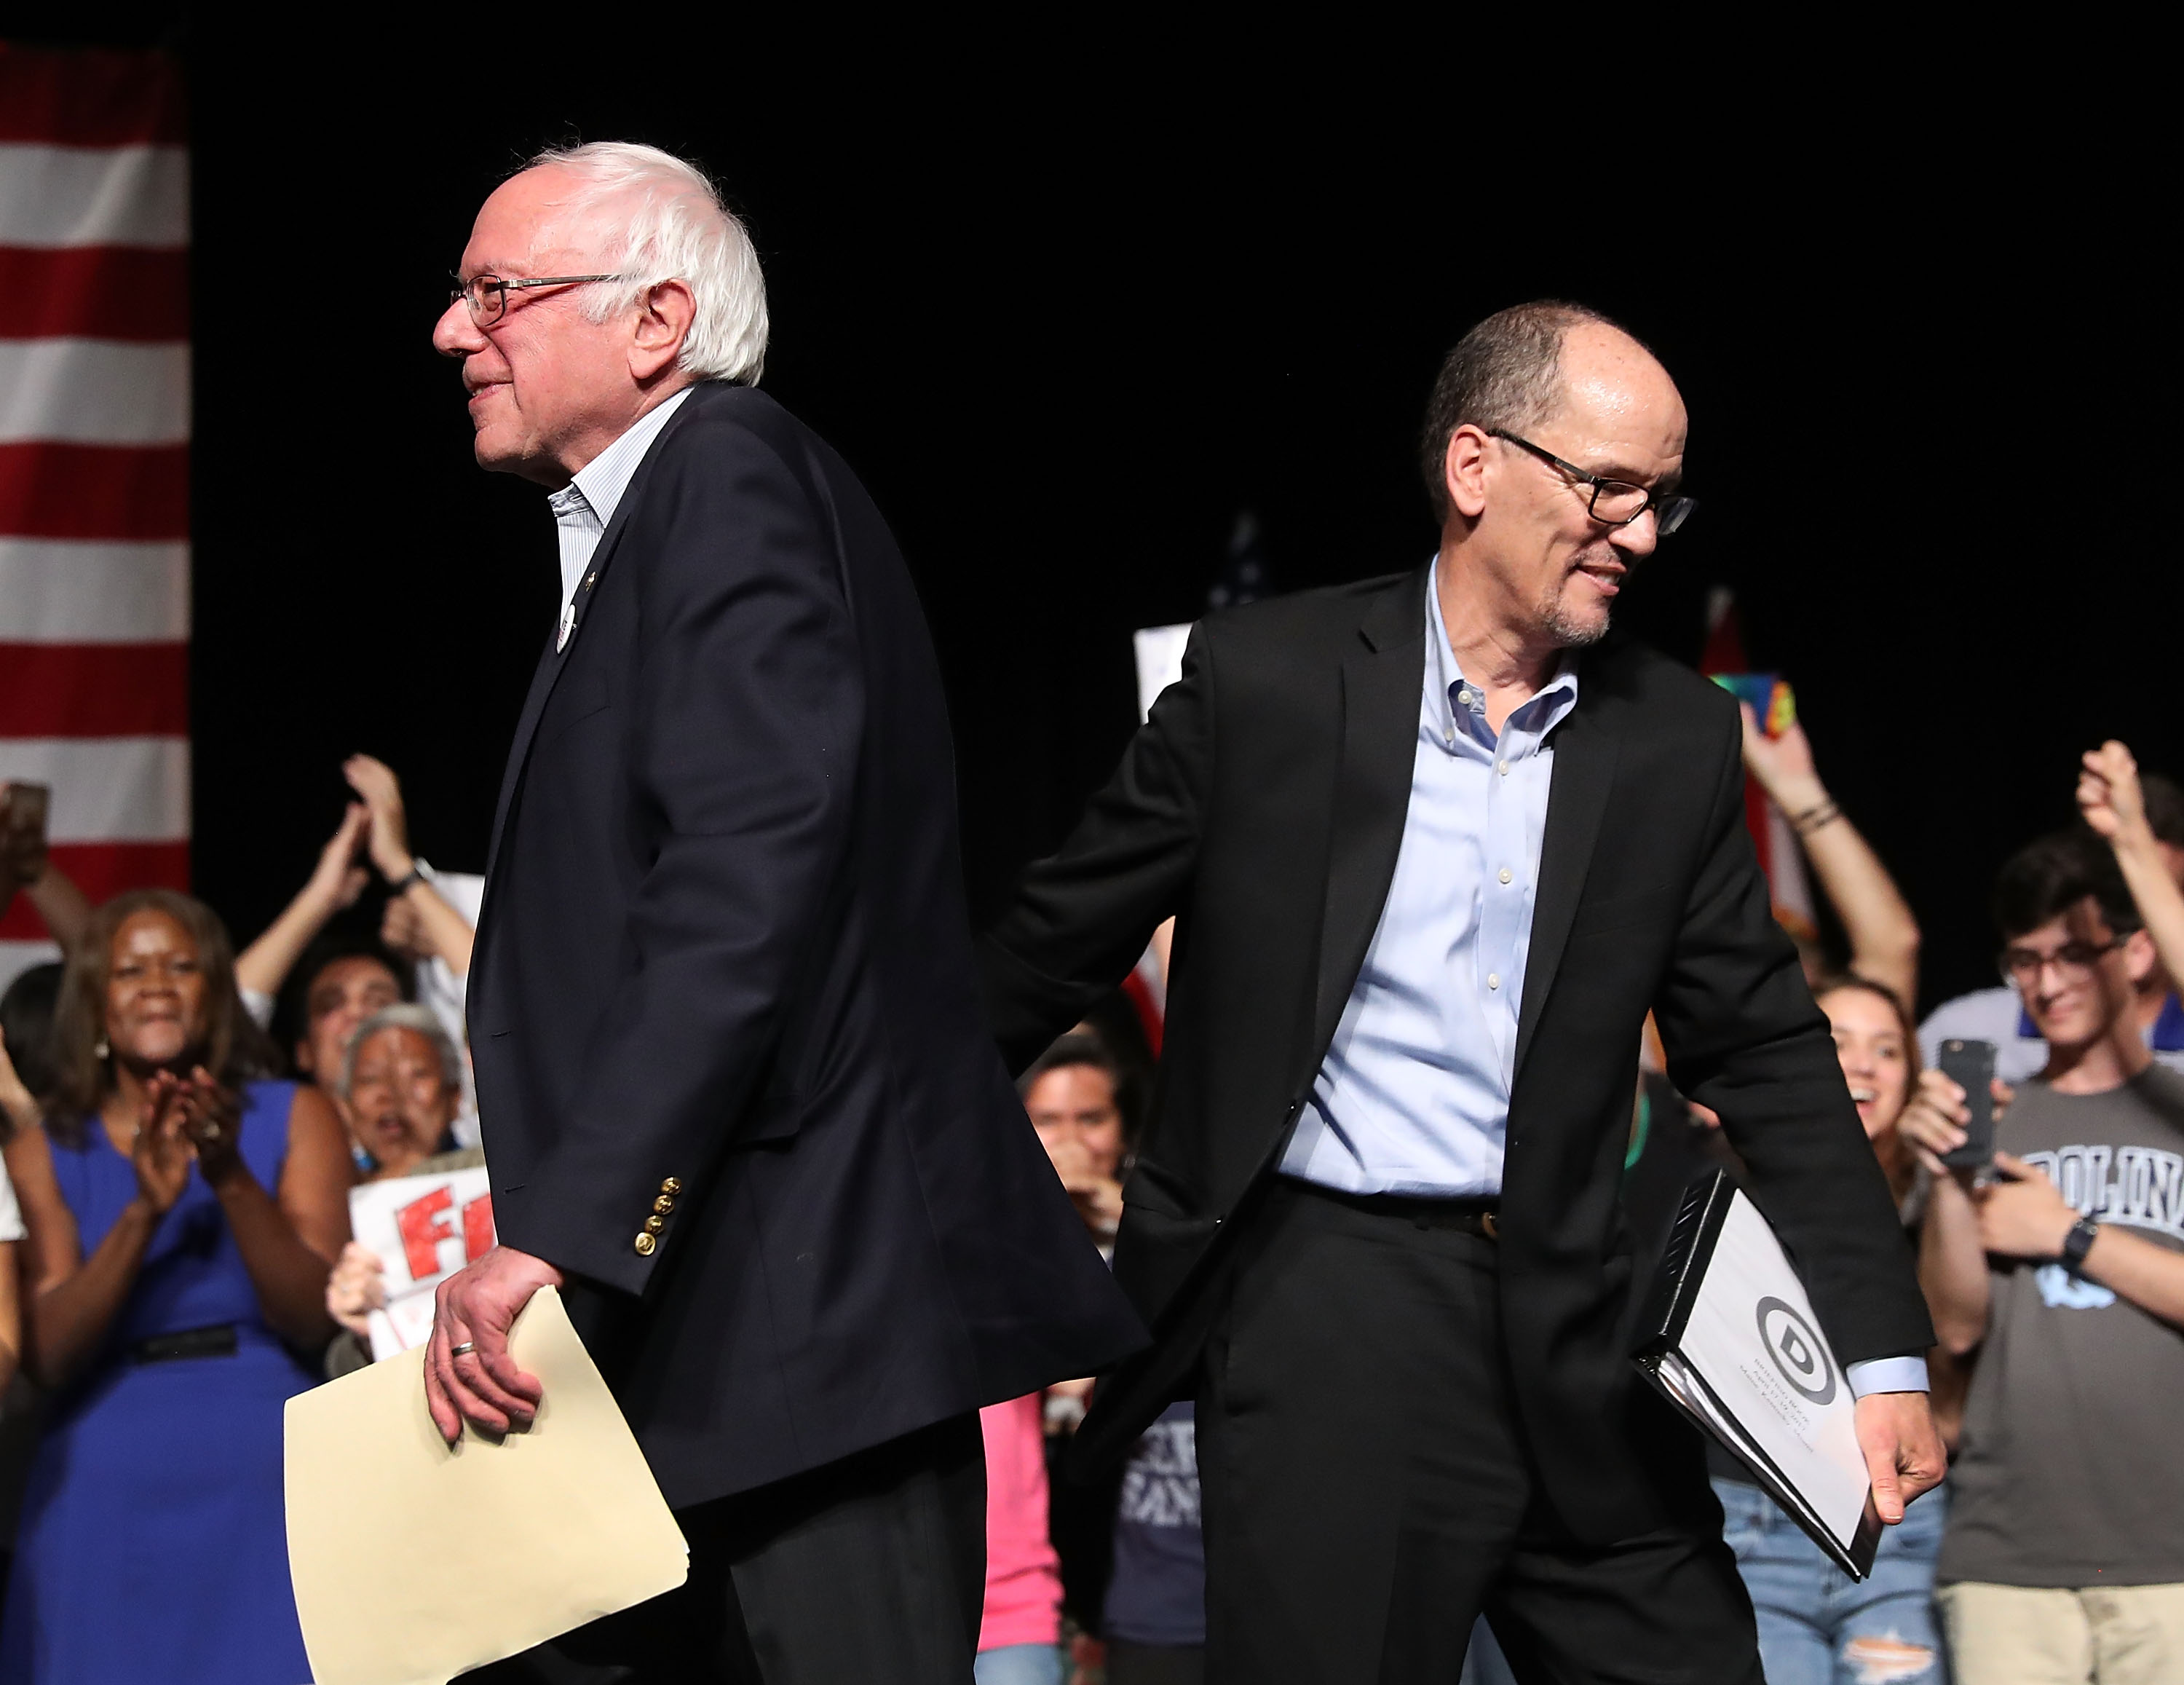 Sen. Bernie Sanders (I-VT) and DNC Chair Tom Perez walk past each other as Sen. Sanders takes to the stage to speak during their  Come Together and Fight Back  tour at the James L Knight Center on April 19, 2017 in Miami, Florida.